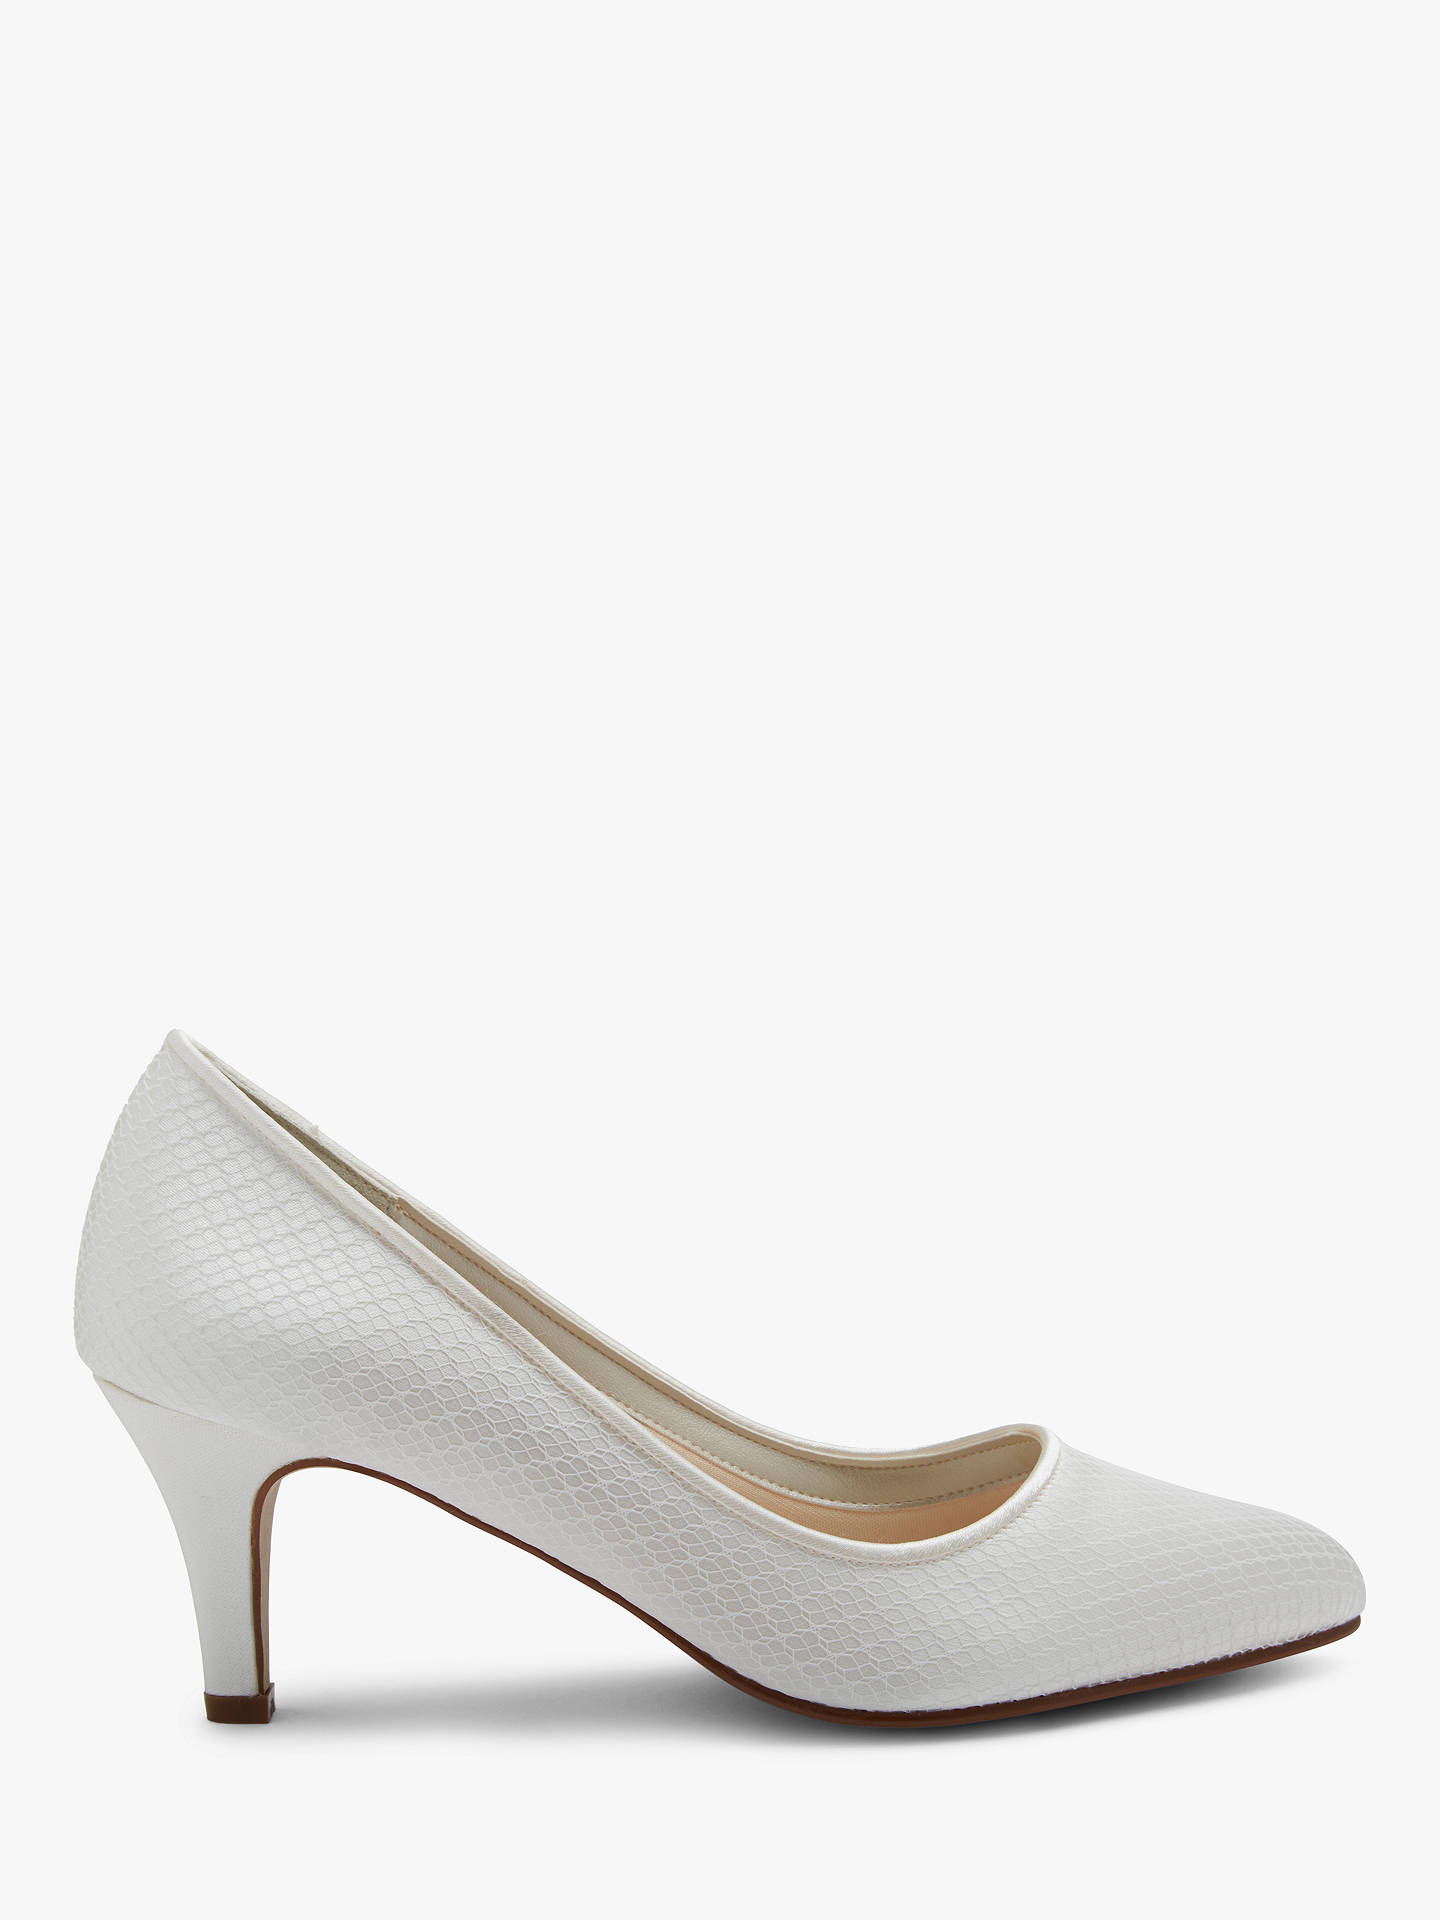 BuyRainbow Club Brooke Court Shoes, Ivory, 3 Online at johnlewis.com